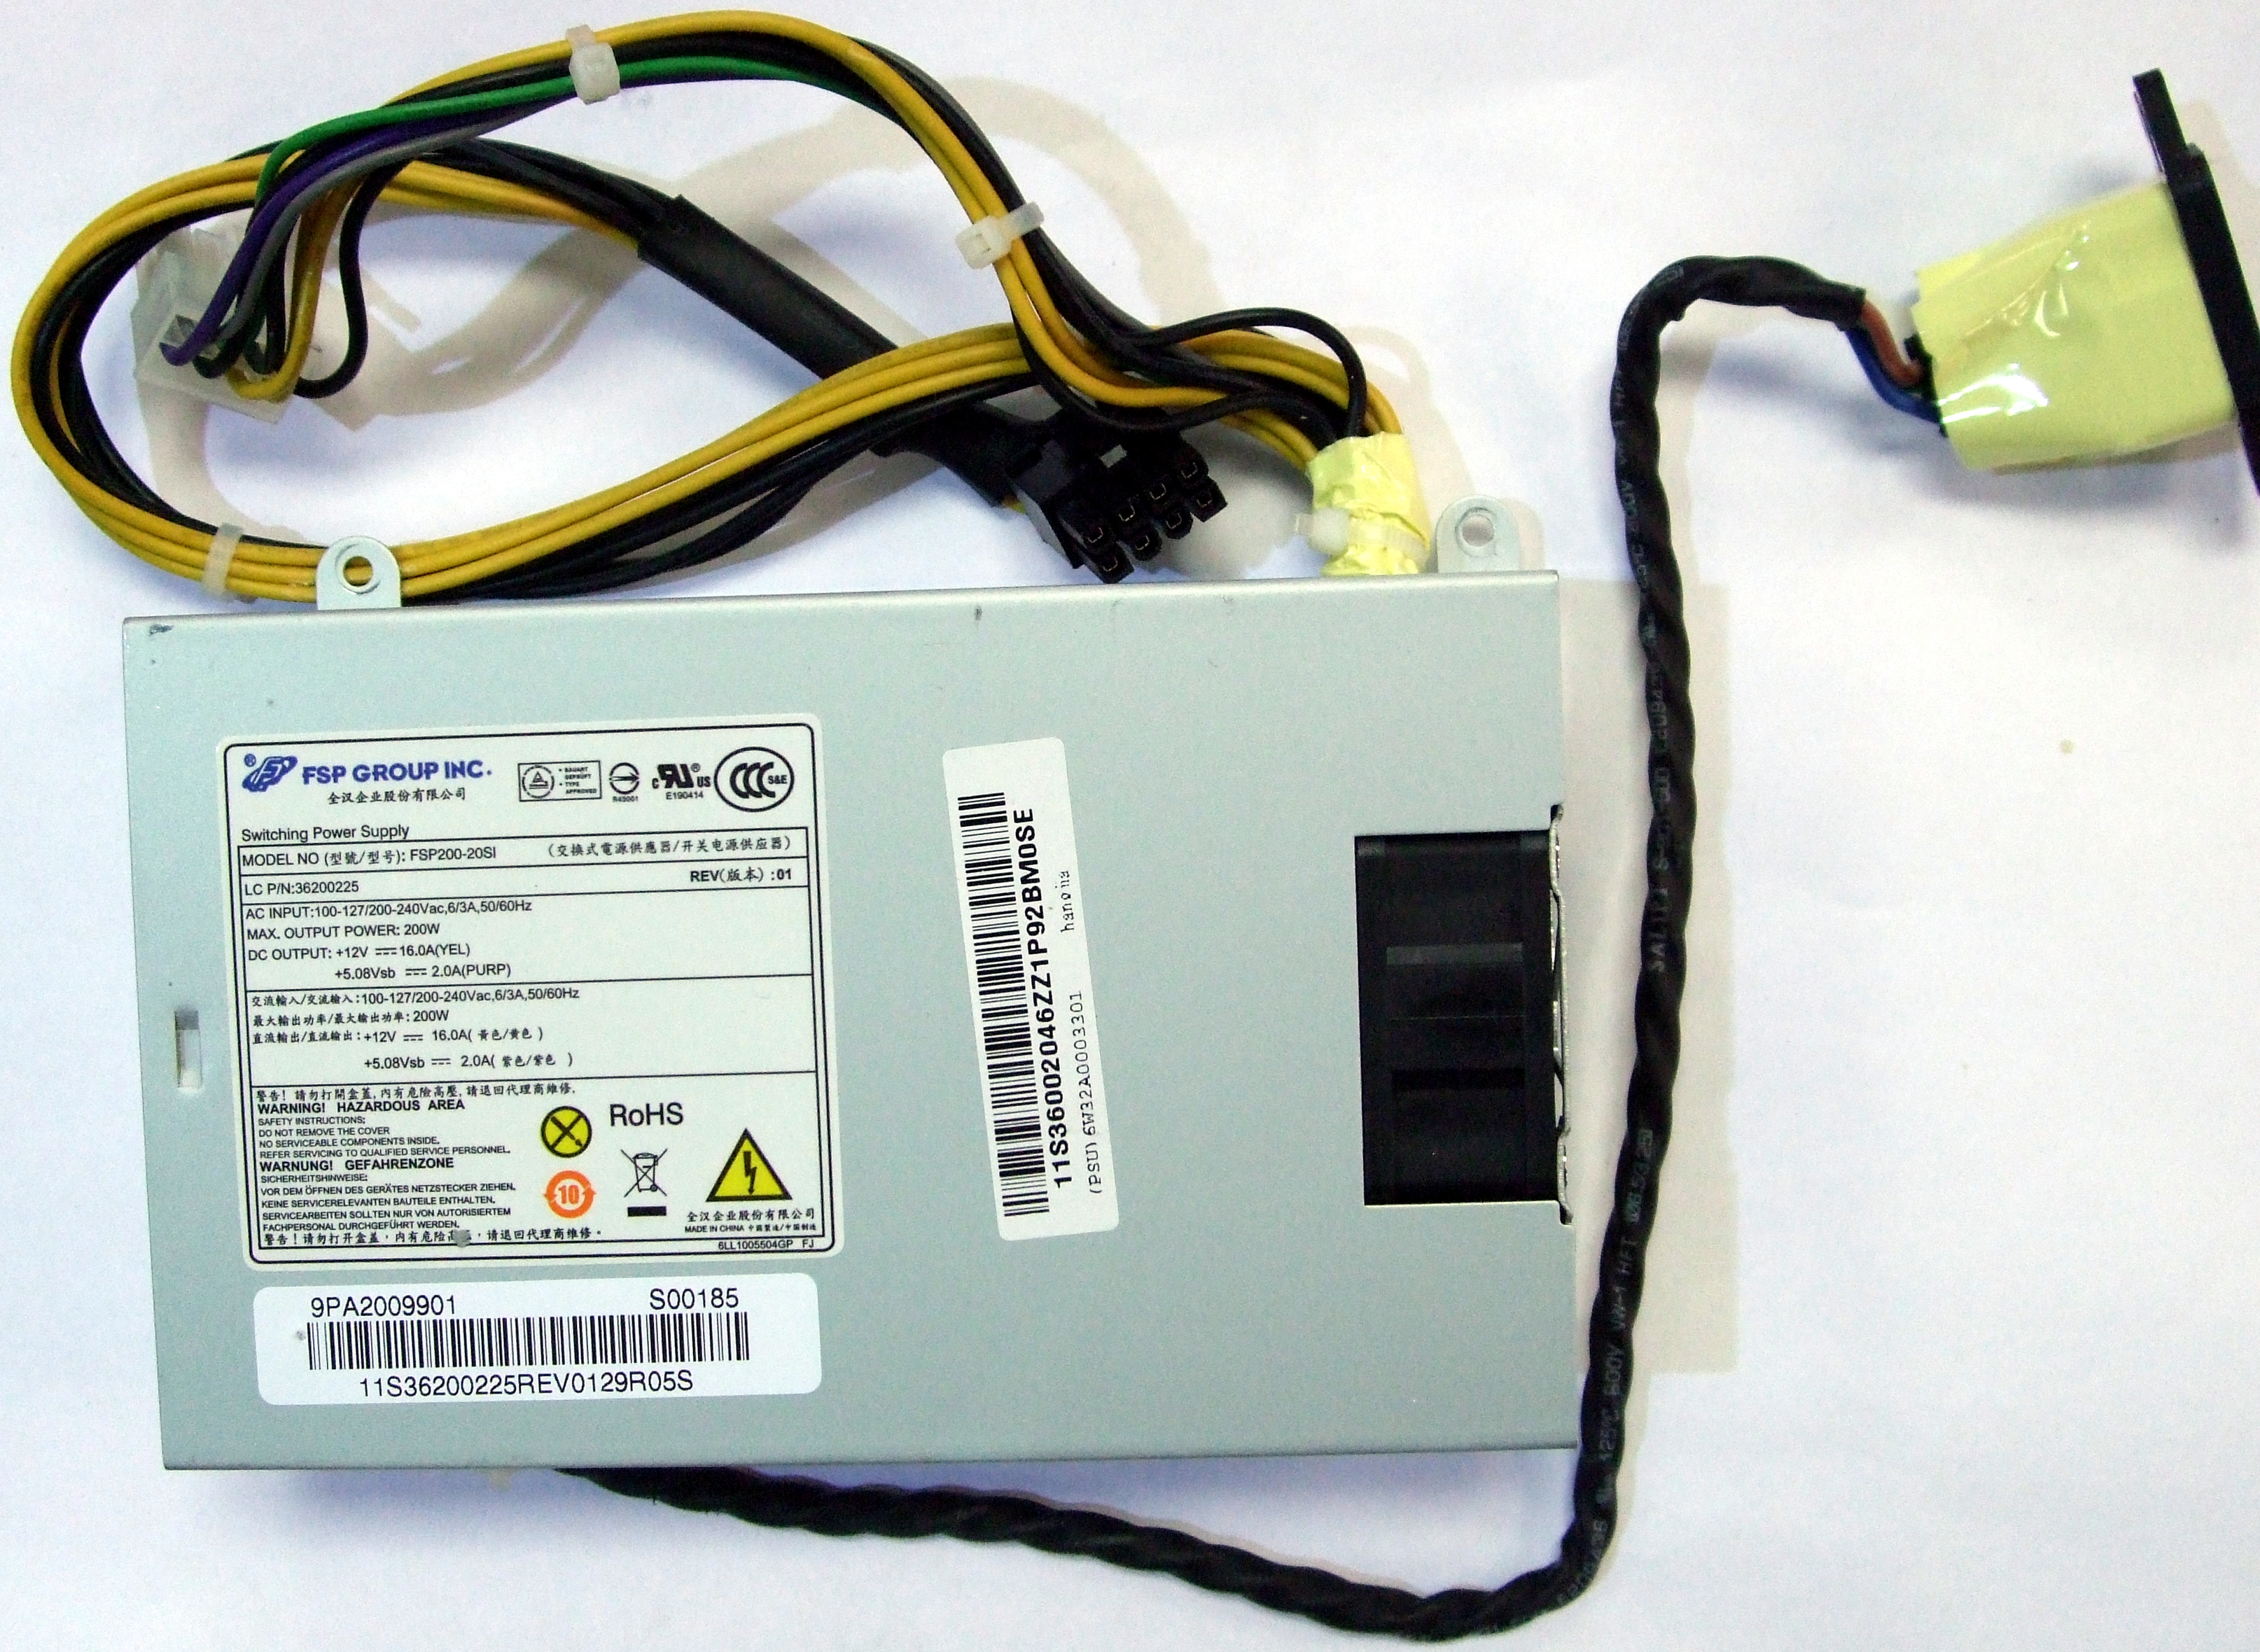 FSP200-20SI FSP 200W Switching Power Supply - Lenovo IdeaCentre B540 9PA2009901